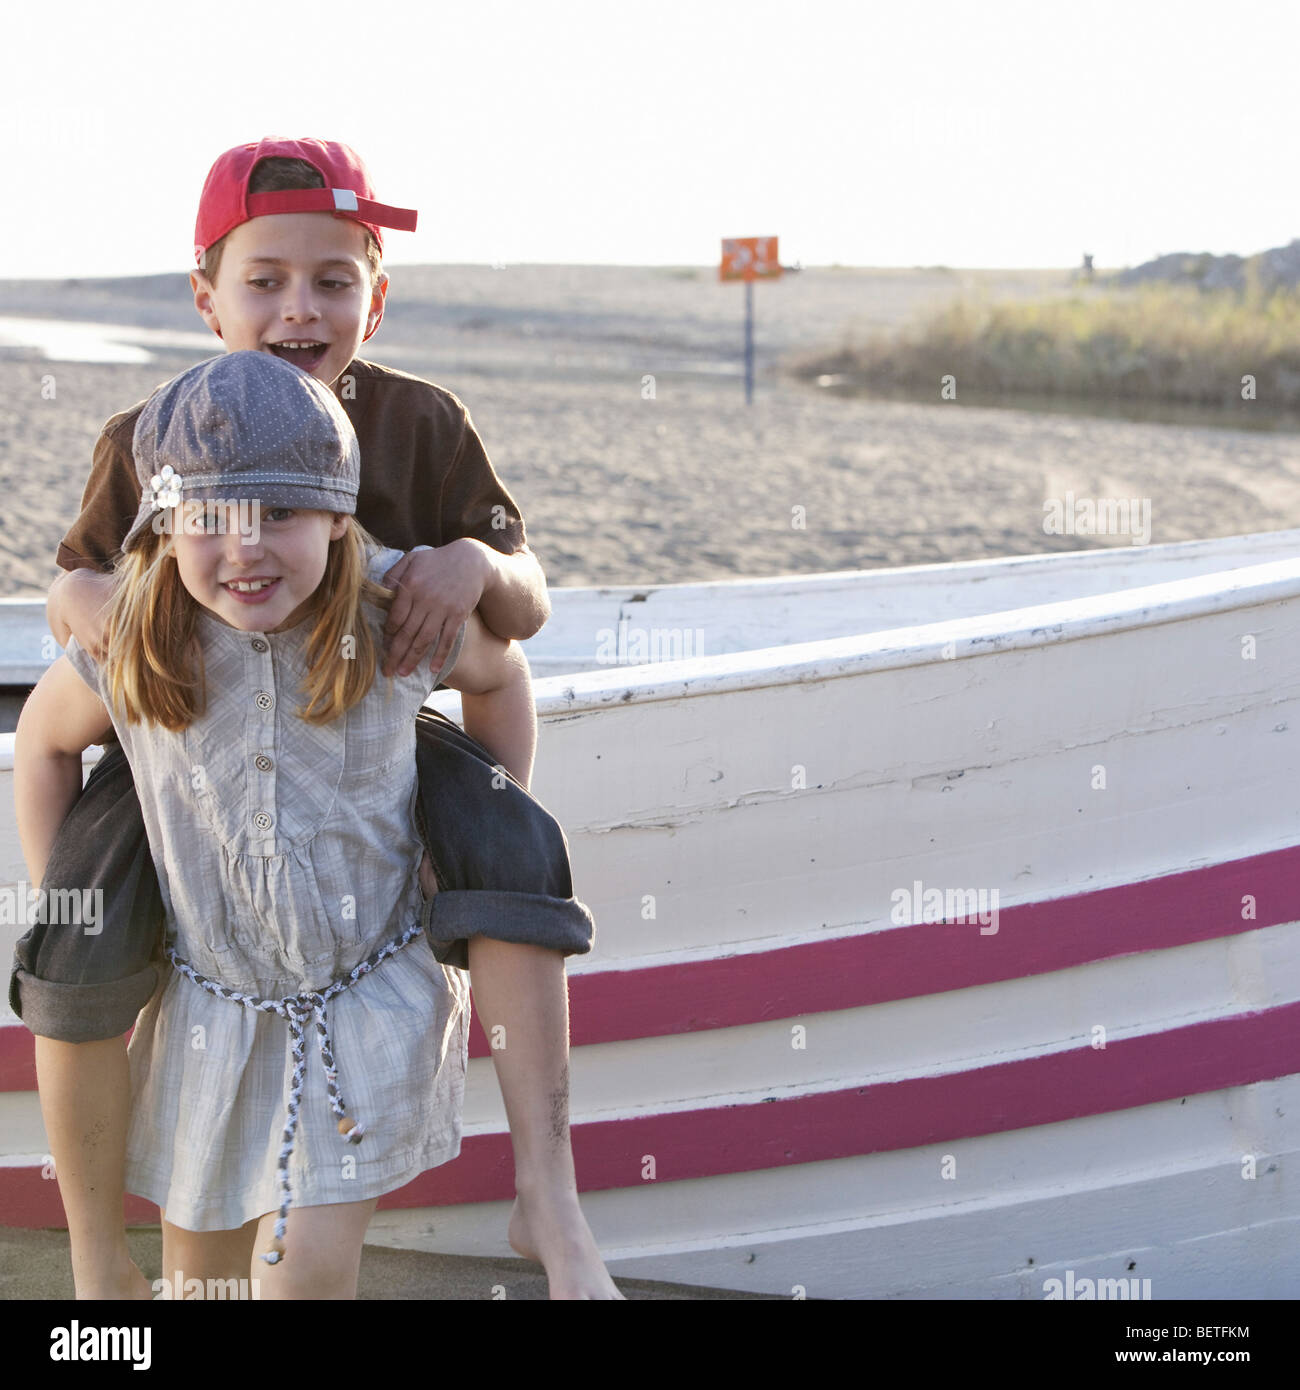 Girl Giving Piggyback To Boy By Boat Stock Photo: 26354712